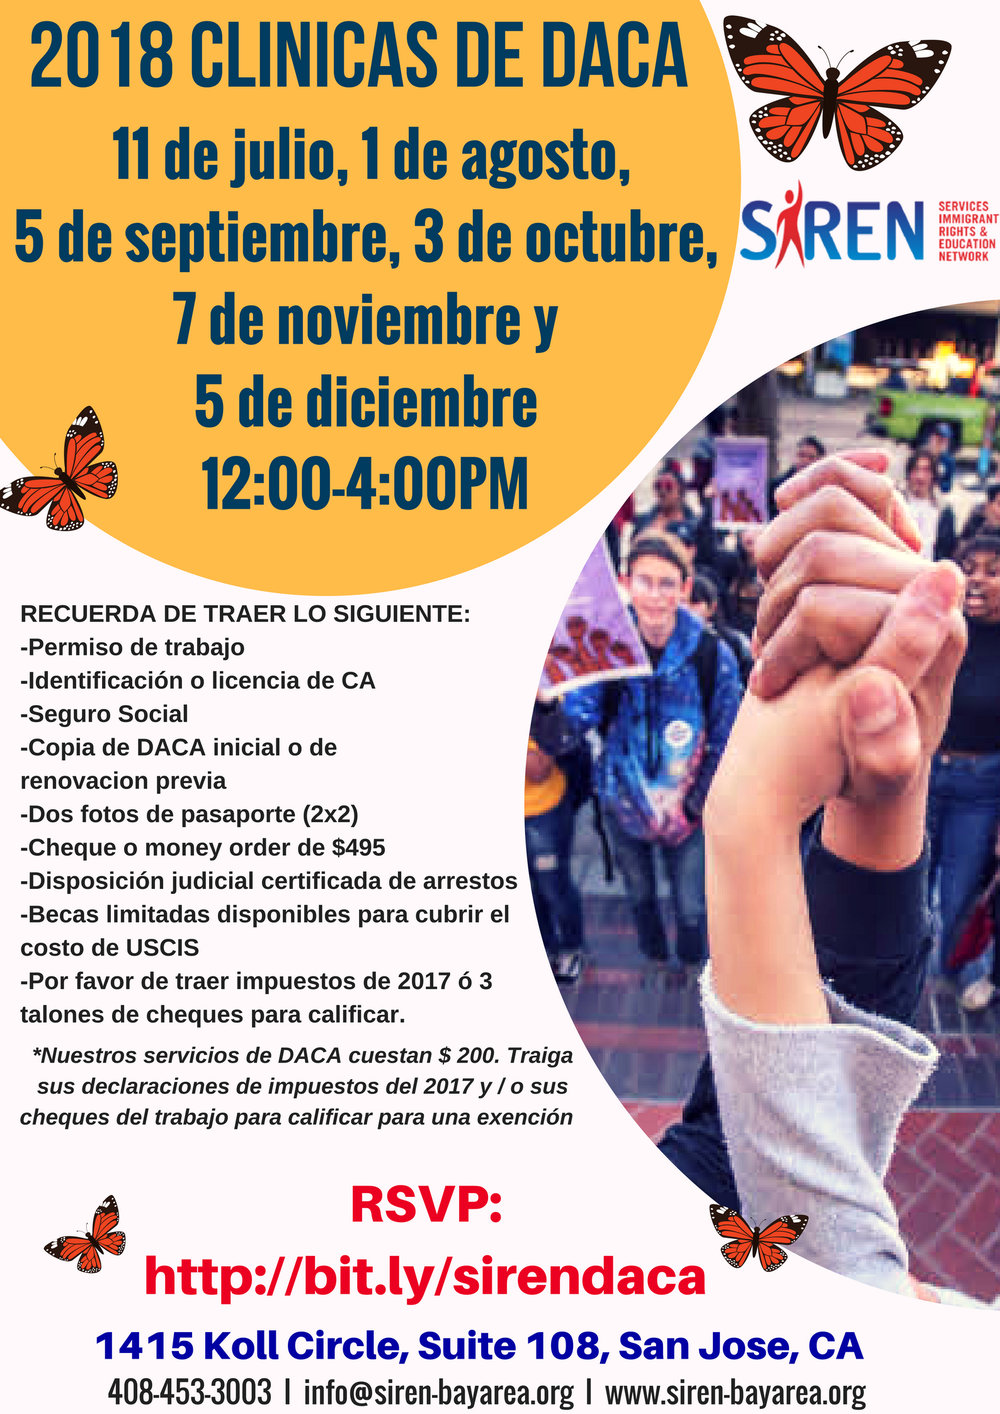 2018 DACA clinic spanish flyer.jpg